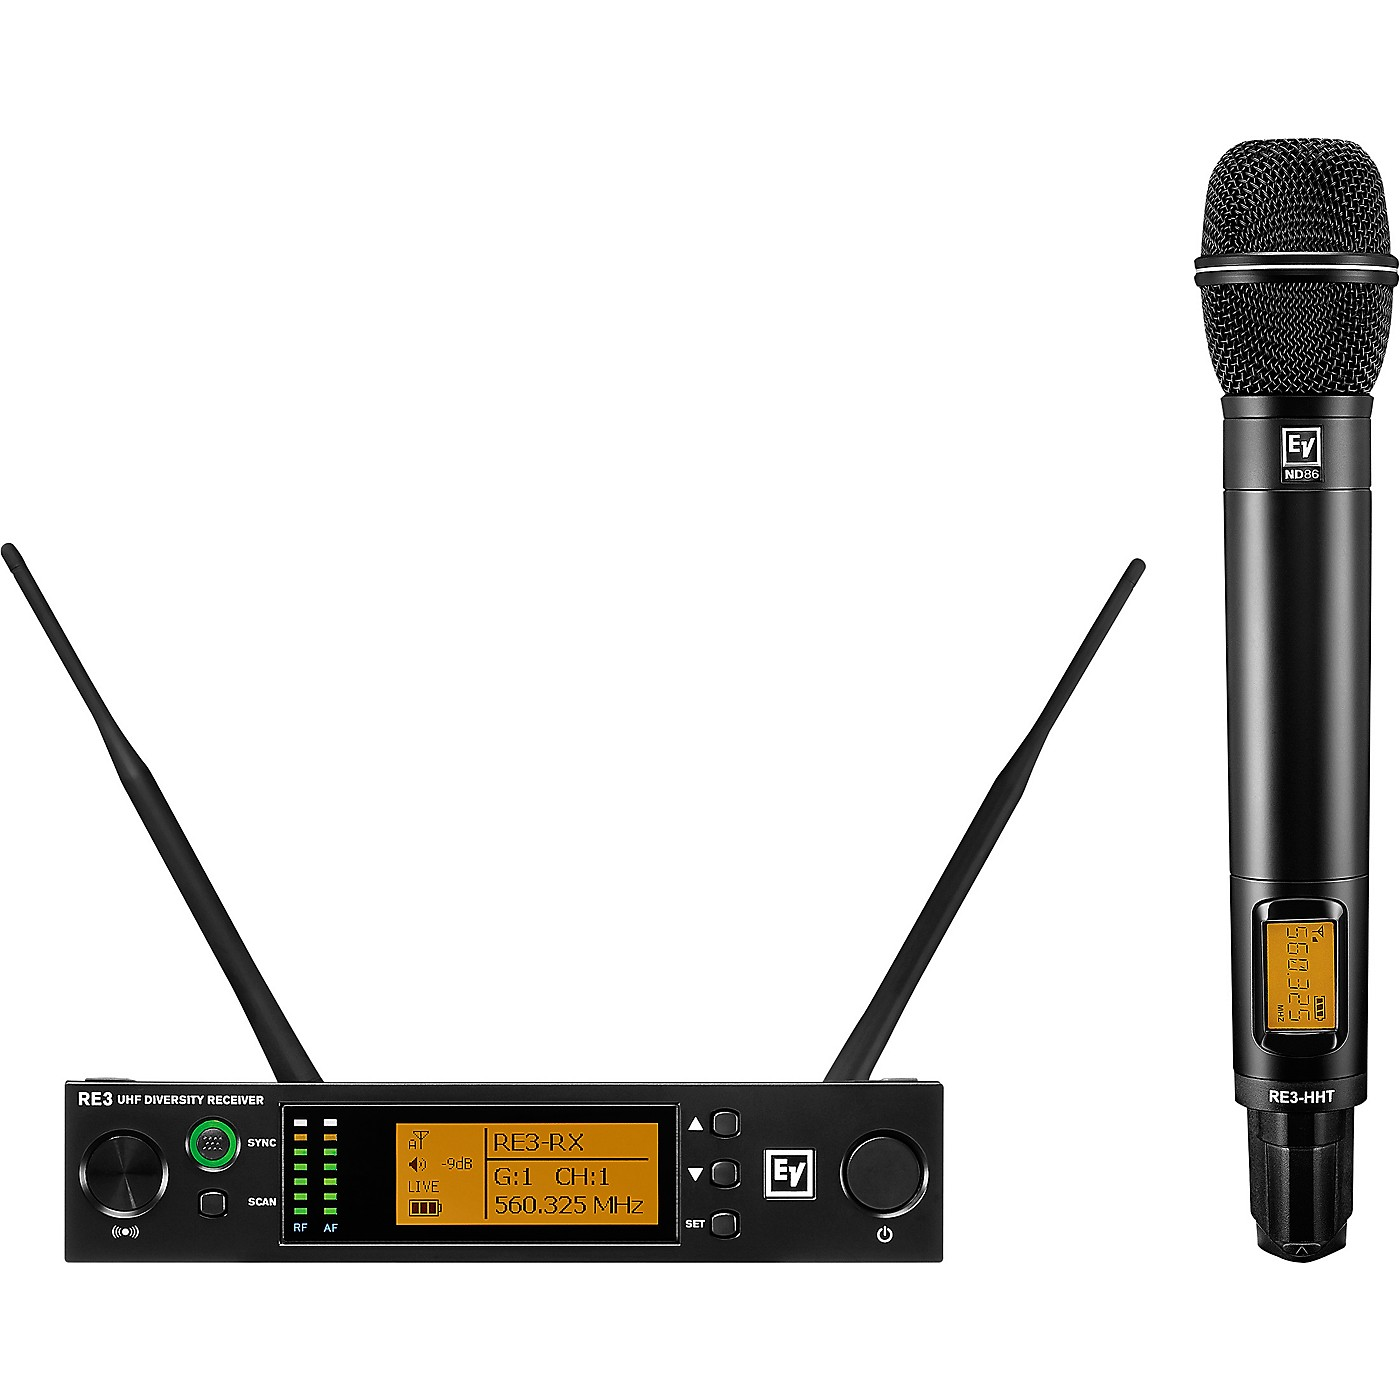 Electro-Voice RE3 Wireless Handheld Set with ND86 Dynamic Supercardioid Vocal Microphone Head 488-524MHz thumbnail